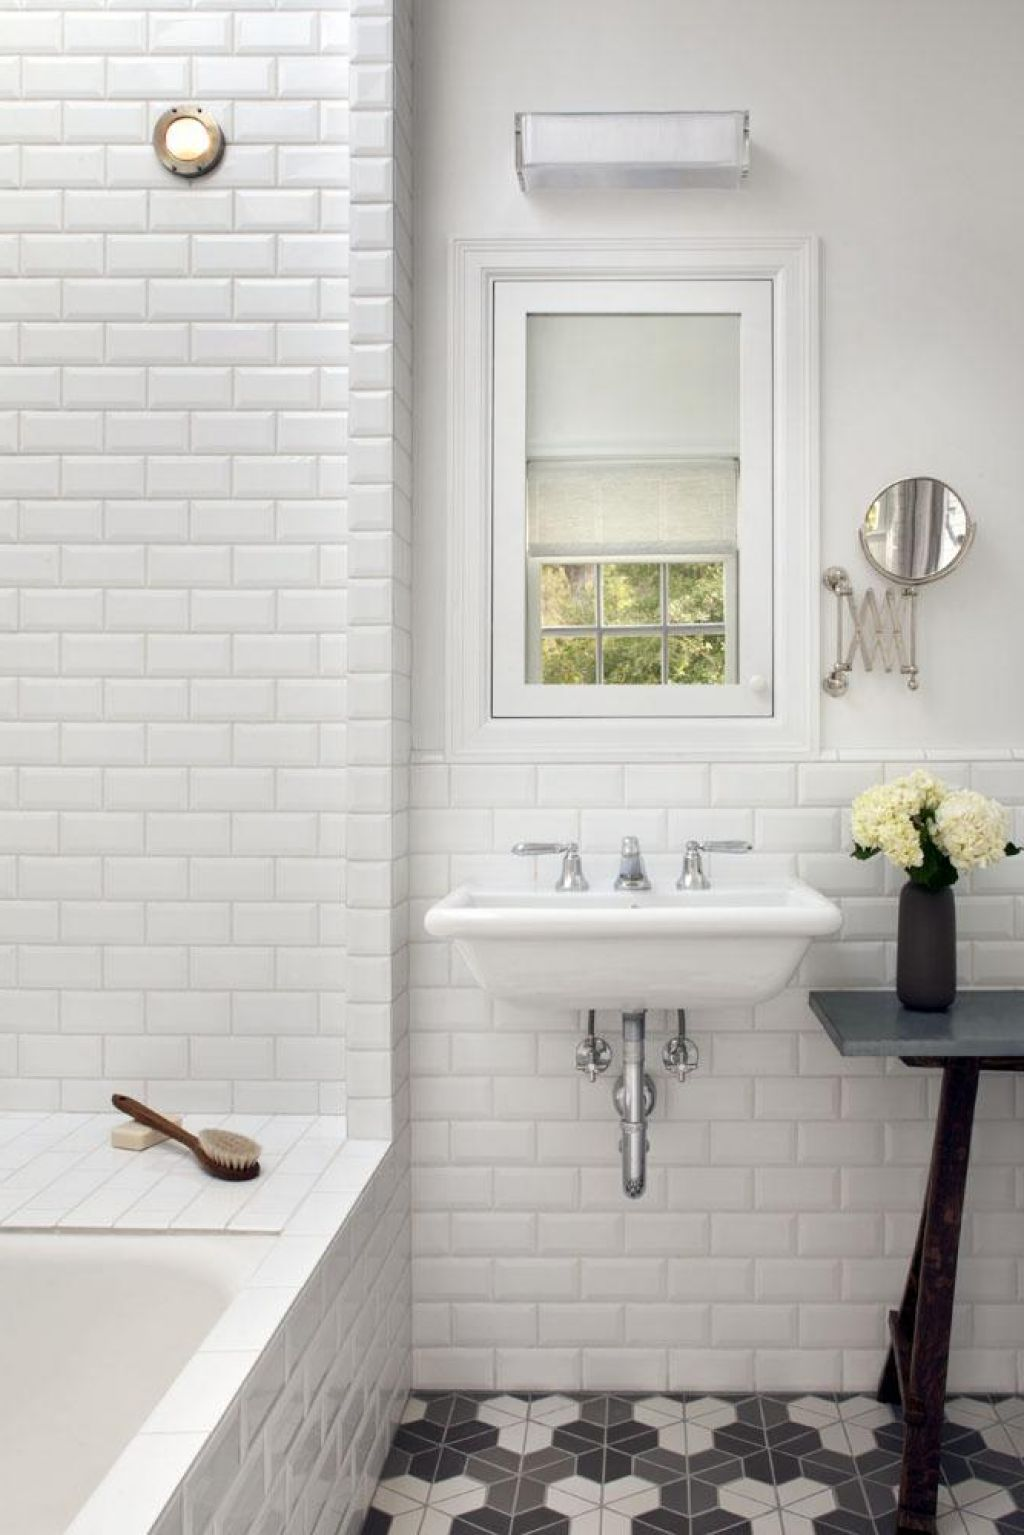 Nice Tile Bathroom Backsplash In Make Unique Bathroom With Subway ...